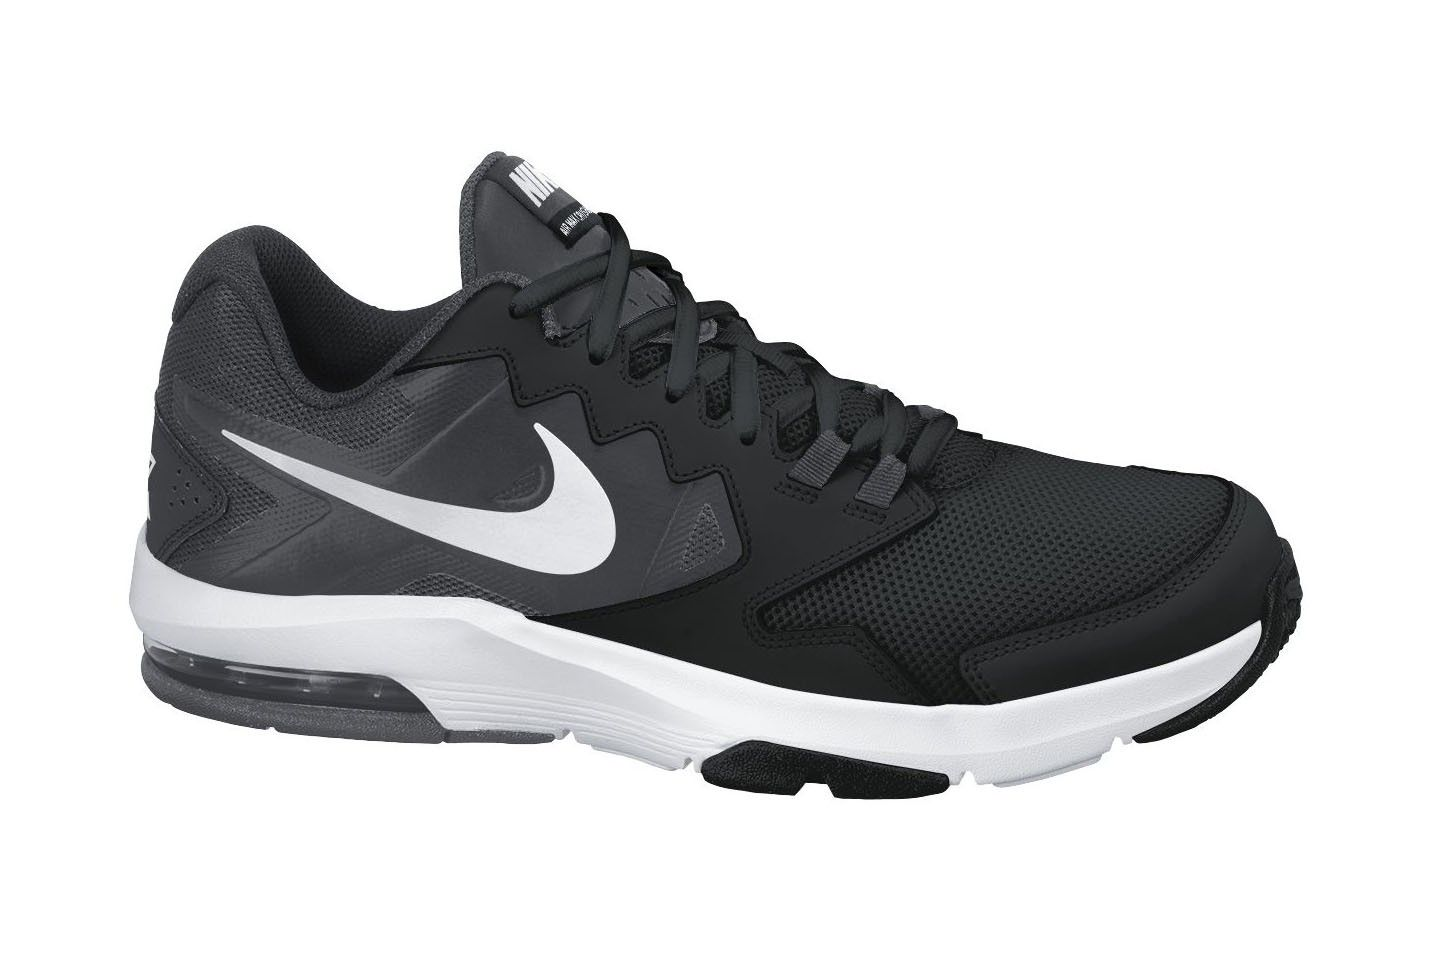 Nike Air Max Crusher 2 Men's Cross Training Shoes D - Medium - coupon box